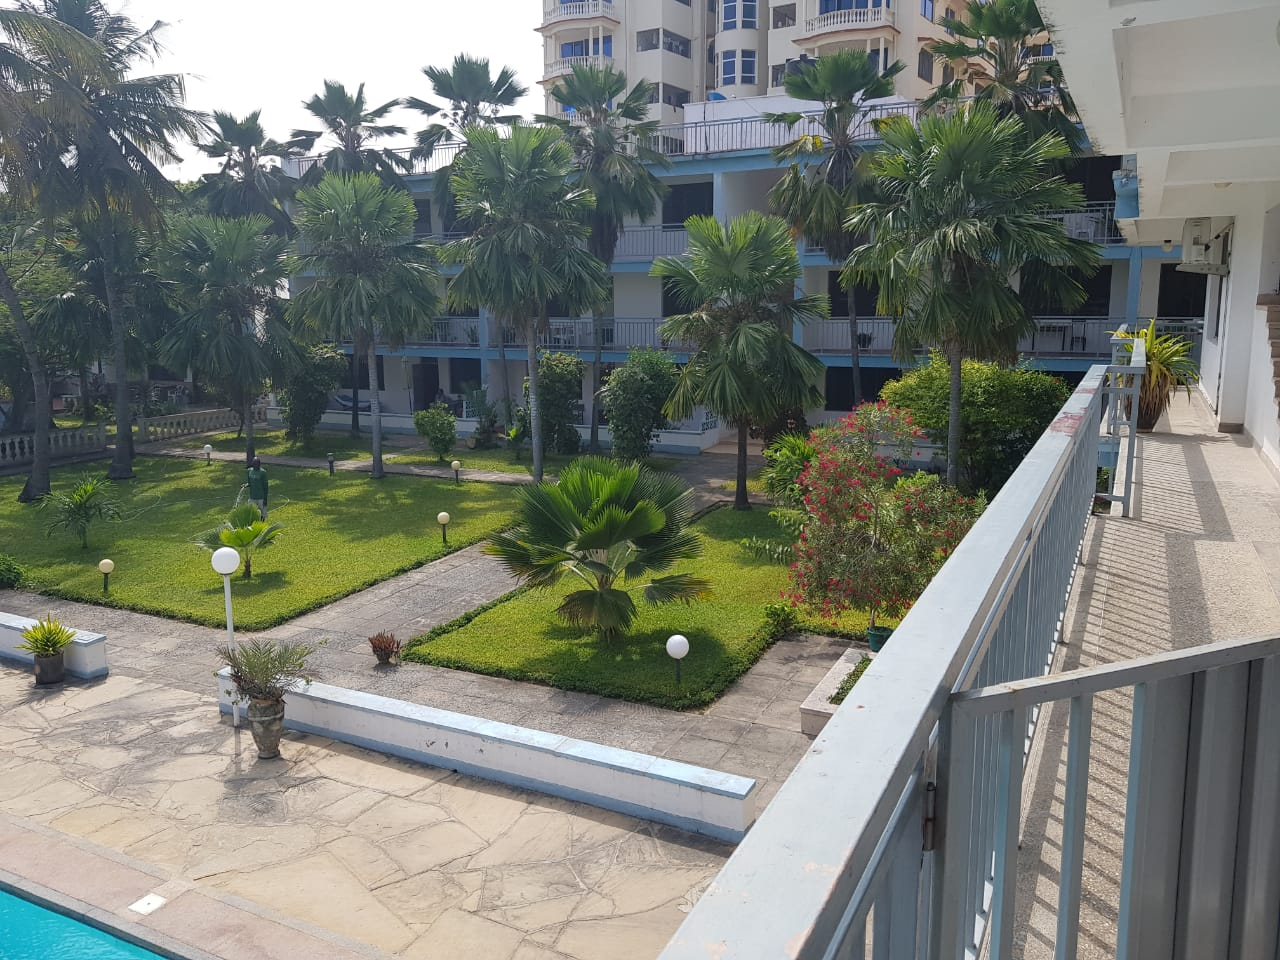 3 bedroom furnished apartments for rent in Nyali-(PARADISE)